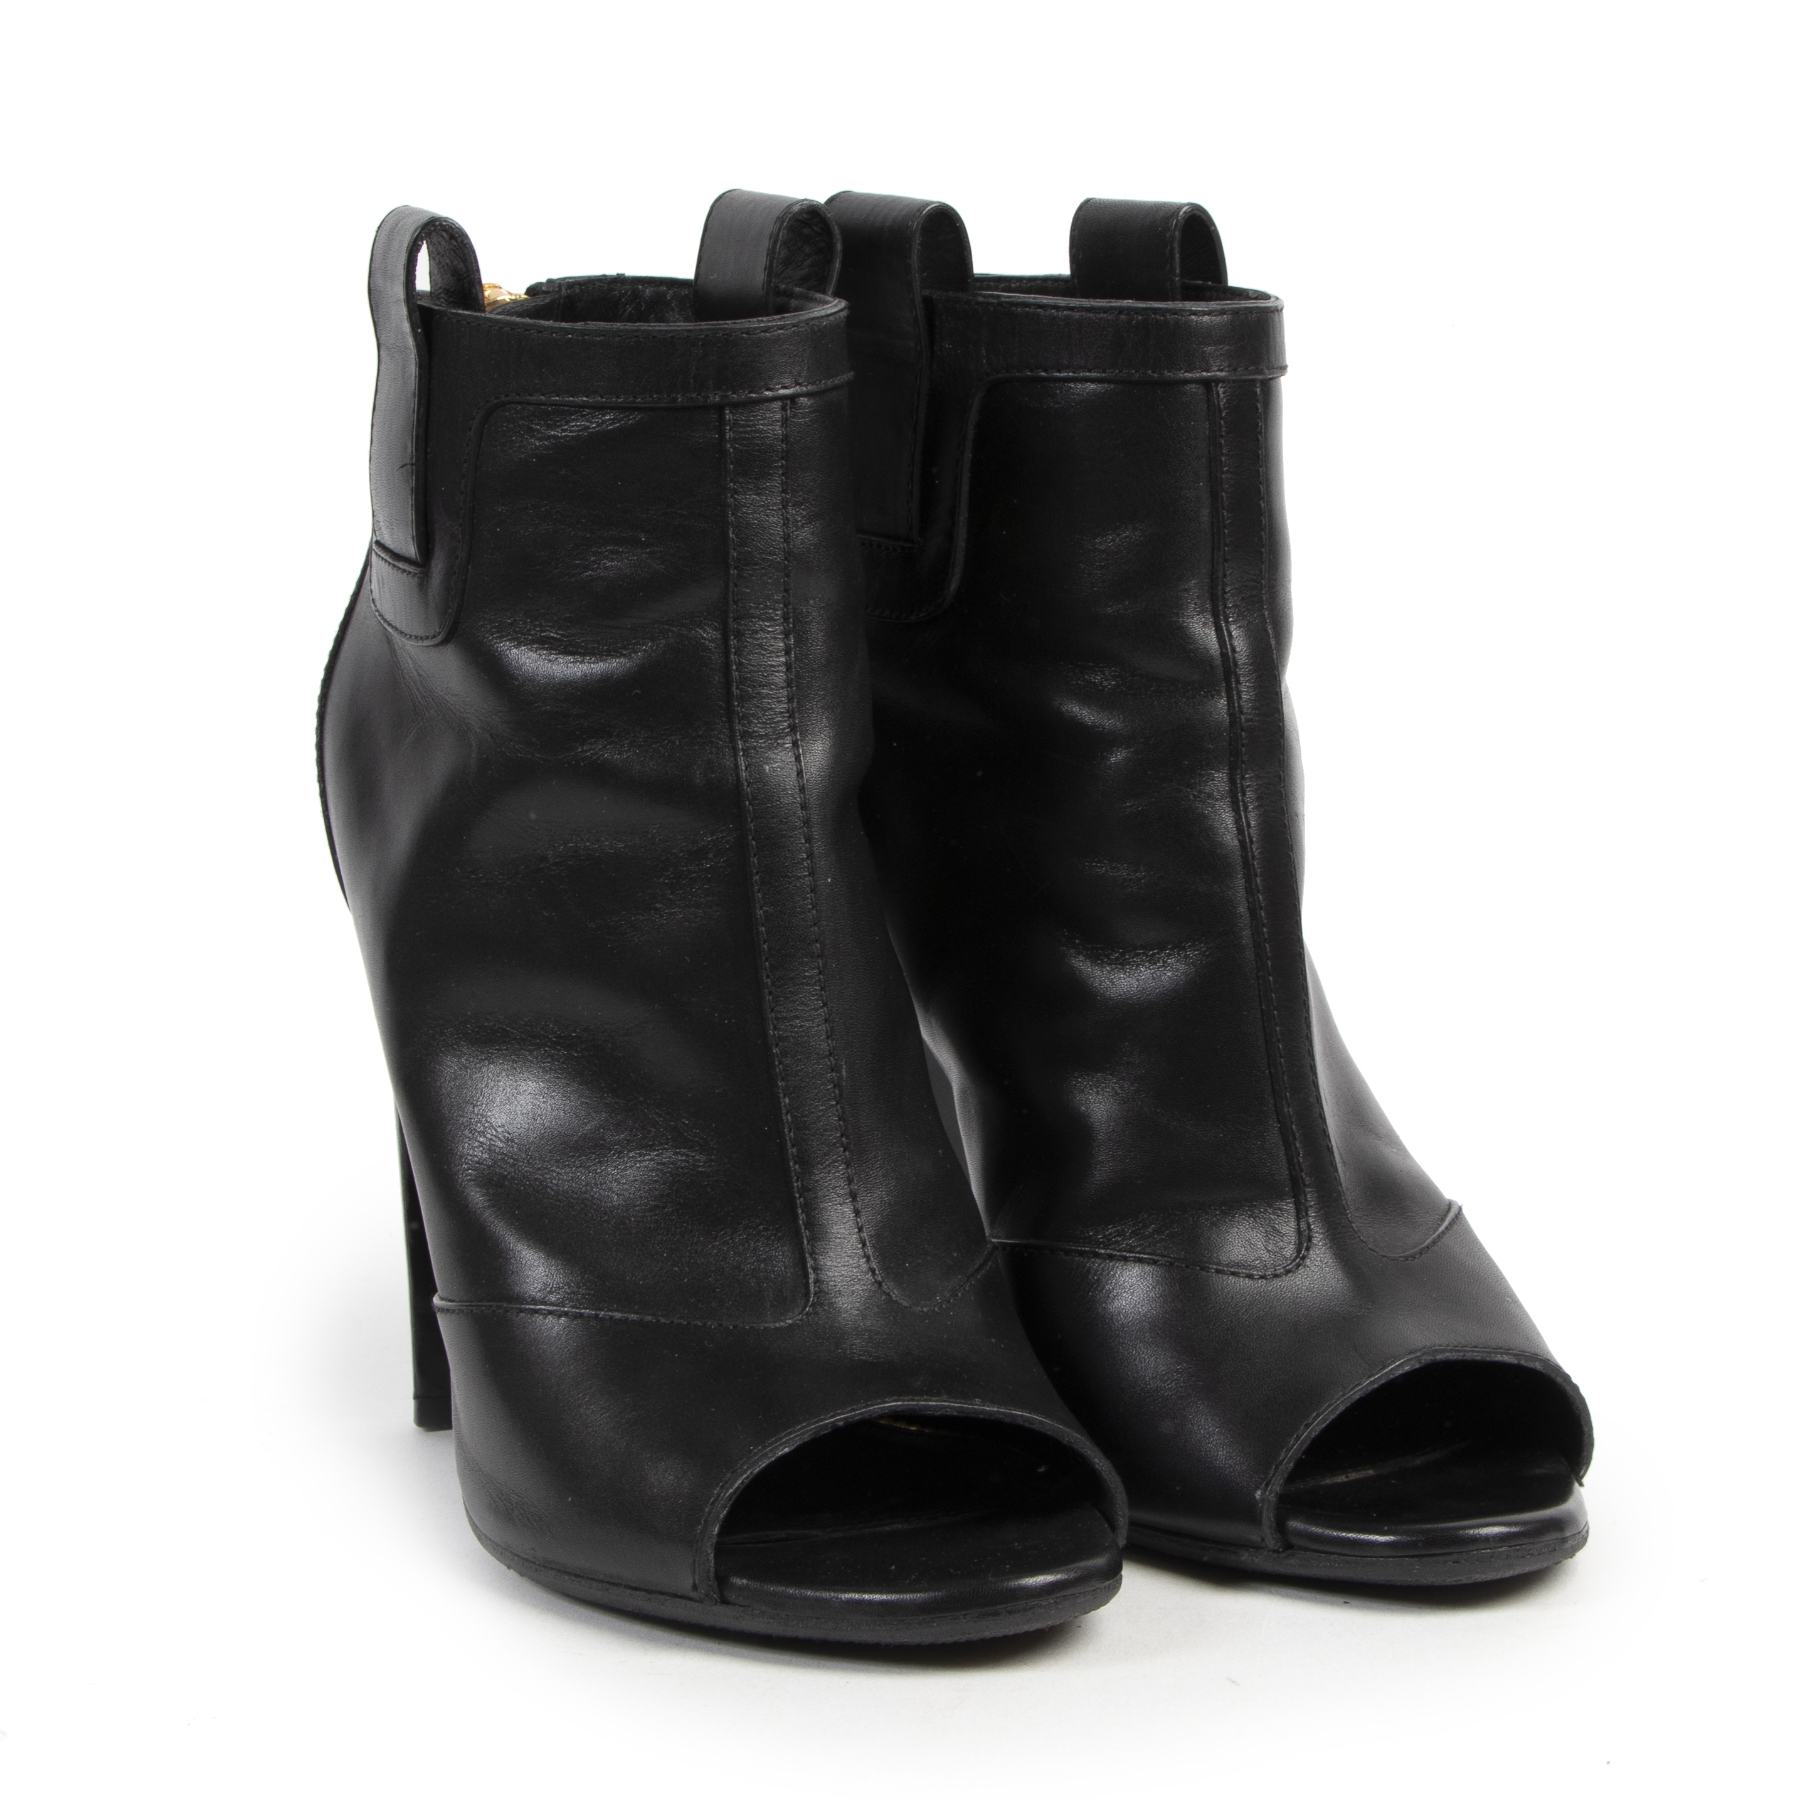 Tom Ford Black Leather Ankle Boots - Size 39